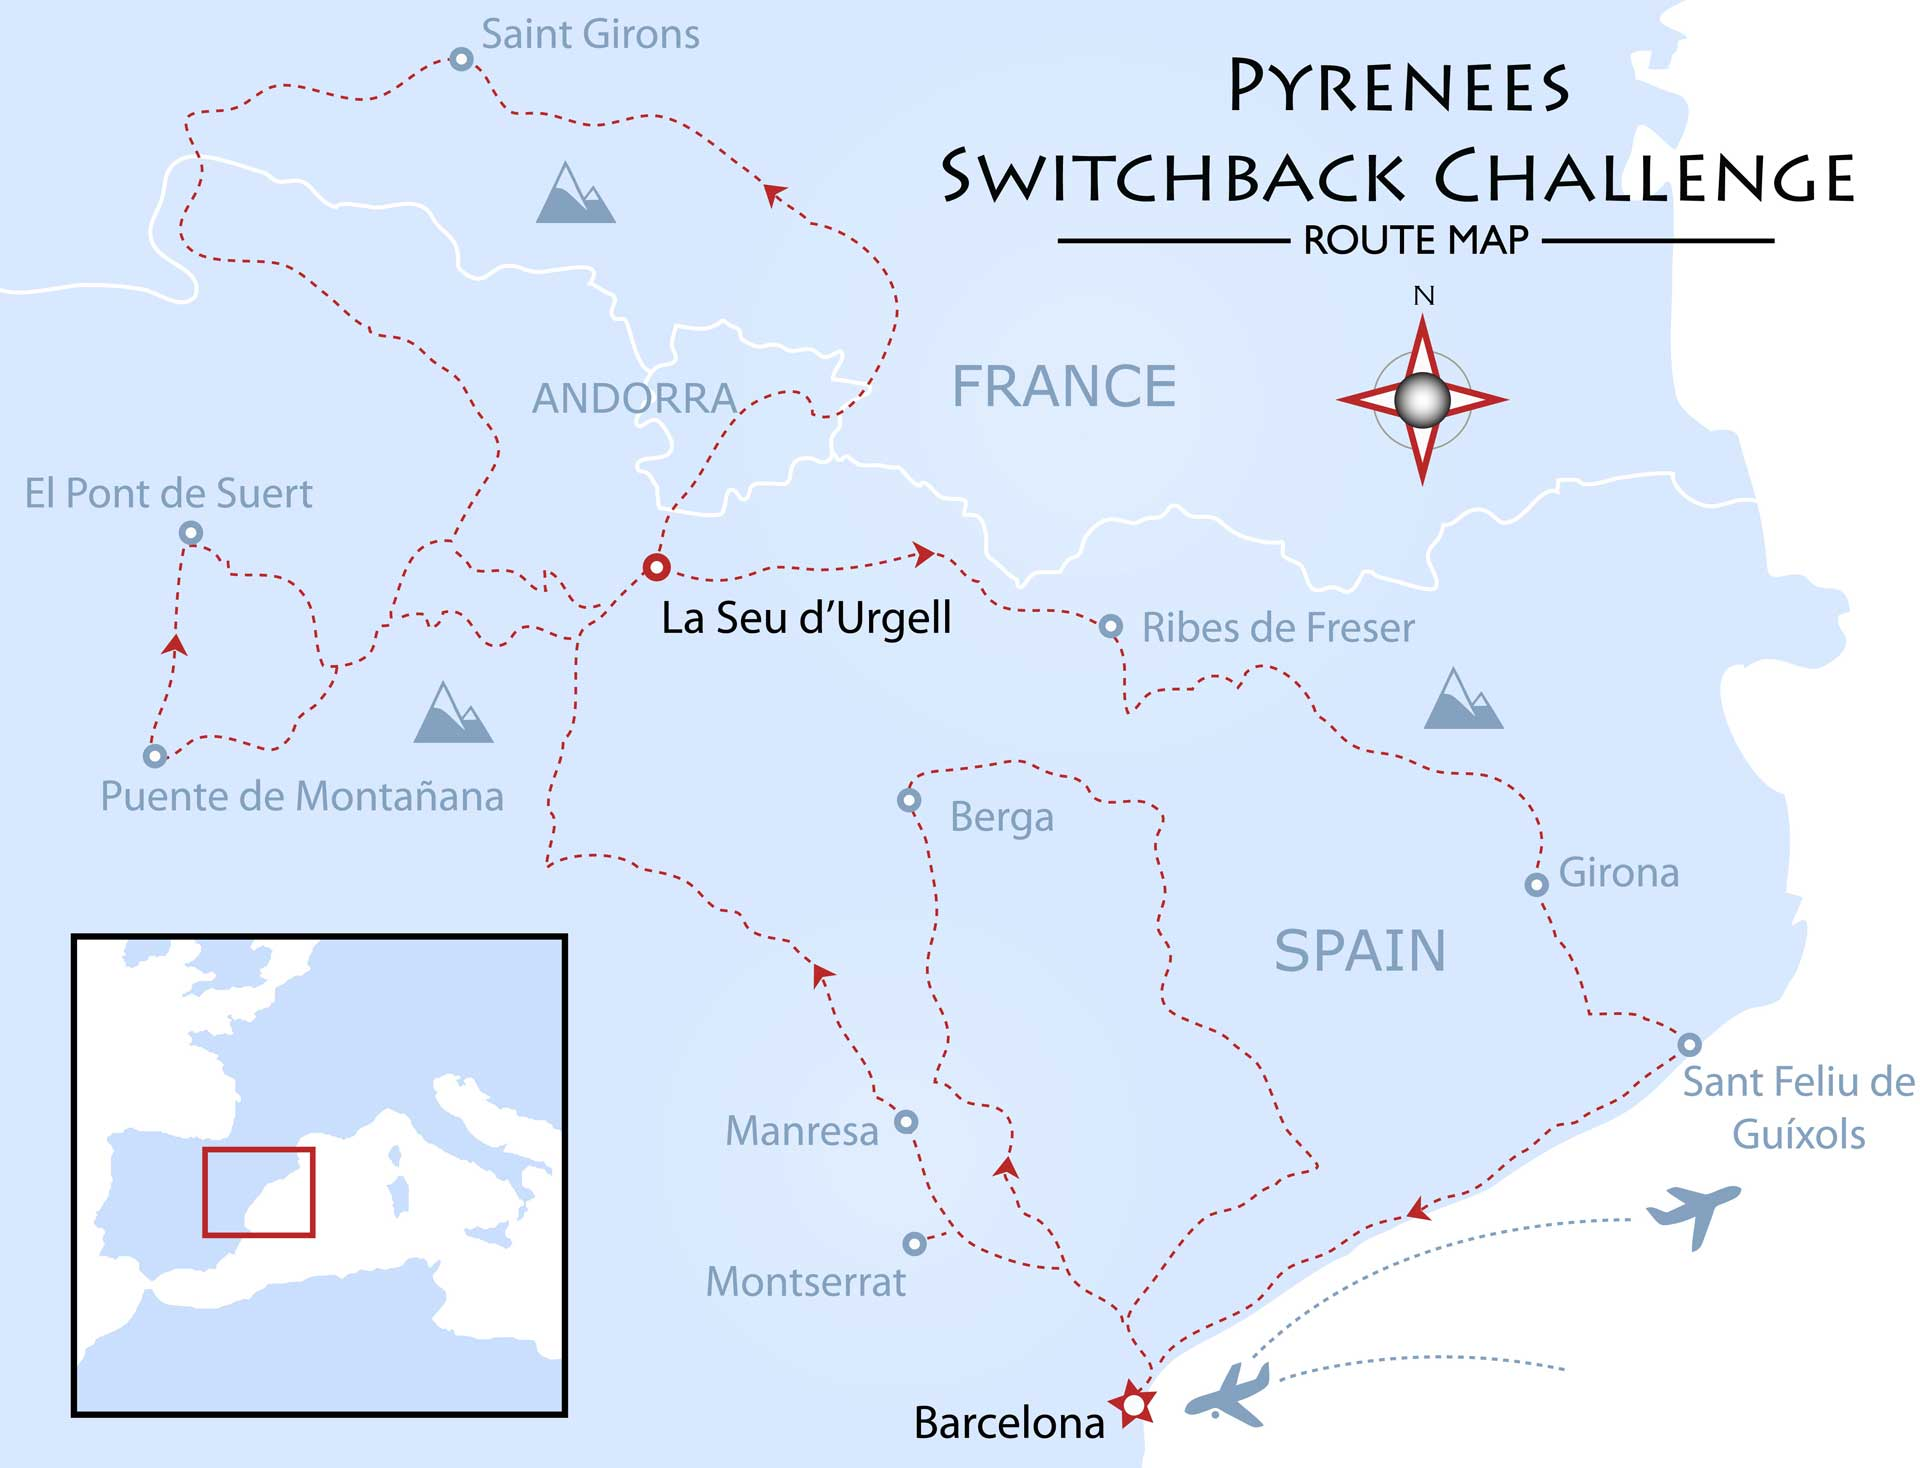 Pyrenees Switchback Challenge Map